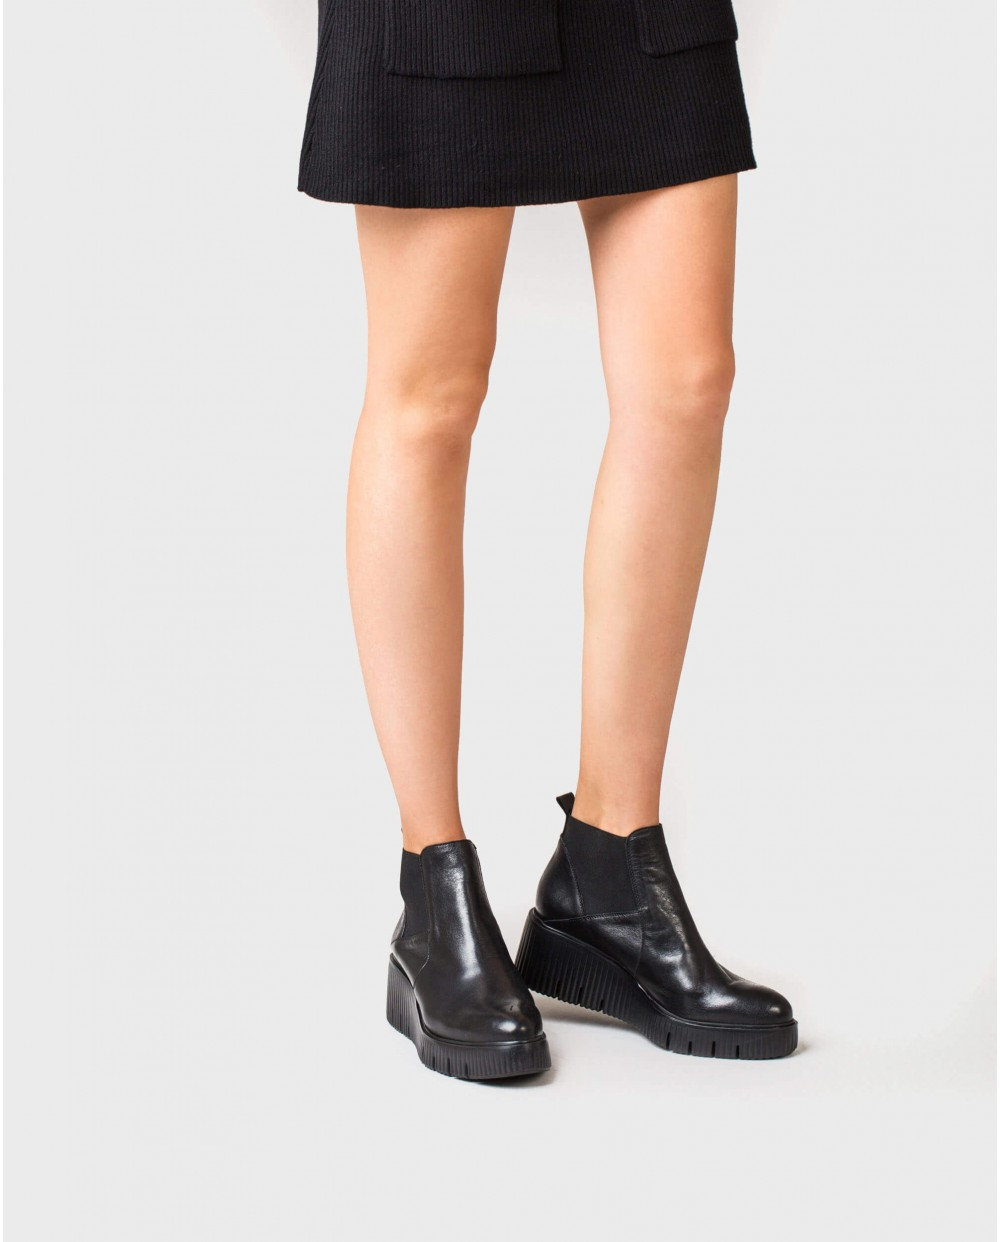 Wonders-Wedges-Leather ankle boot with elastic